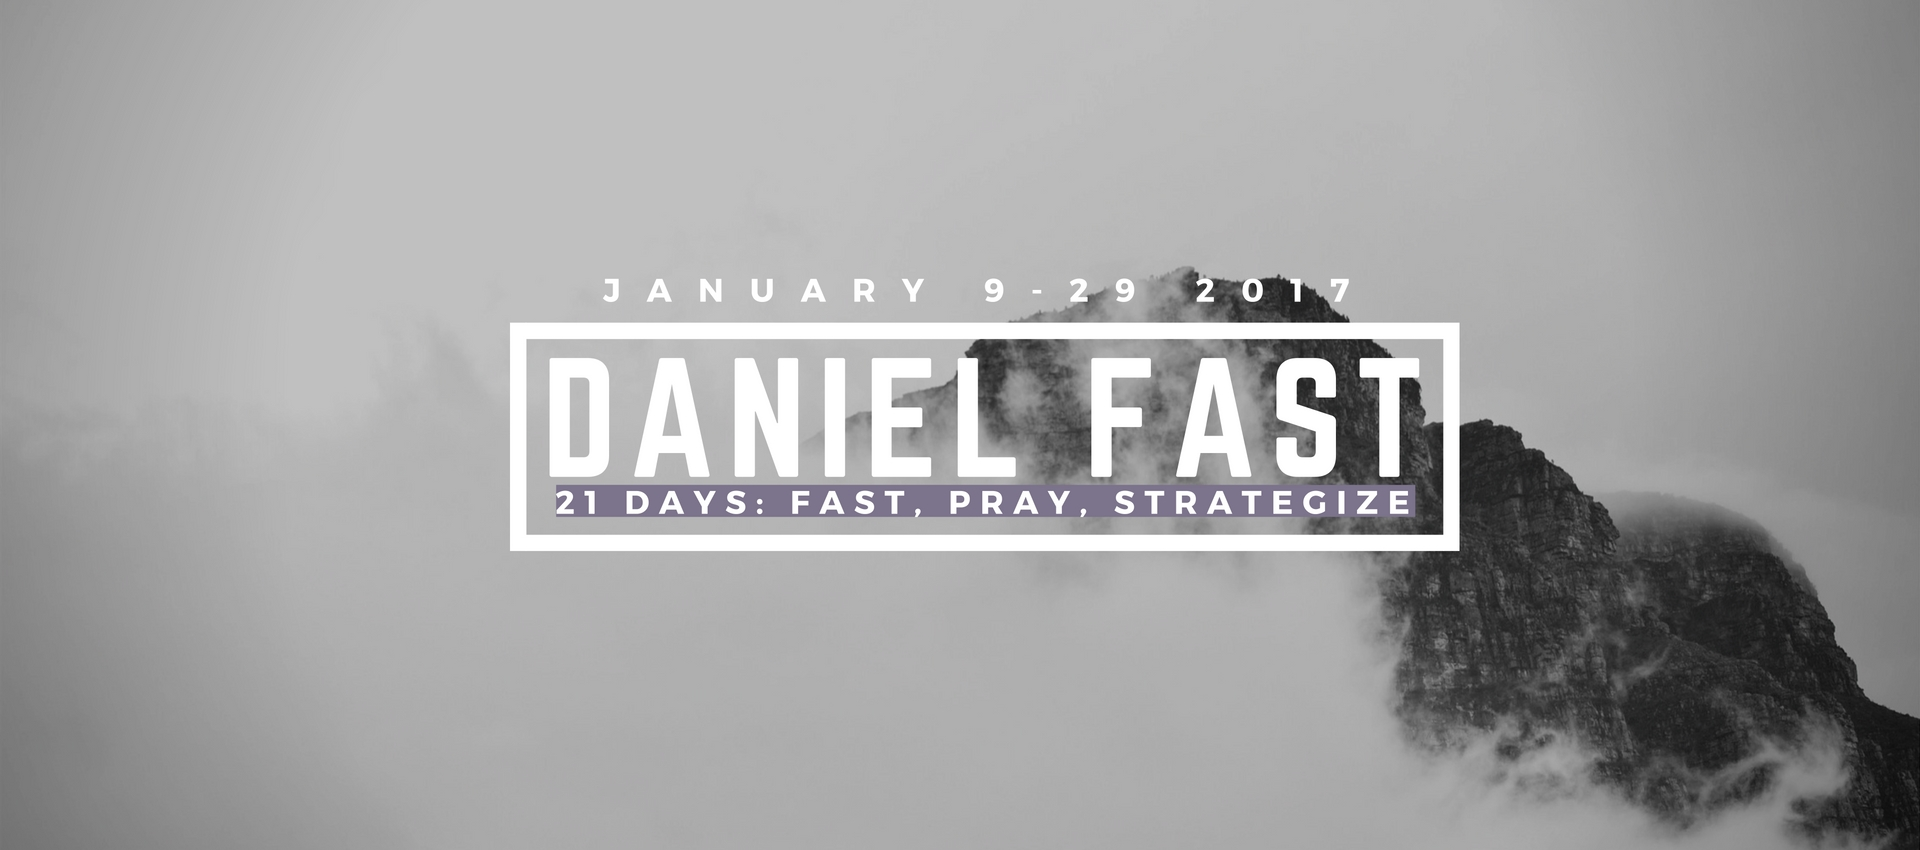 Daniel Fast is coming!